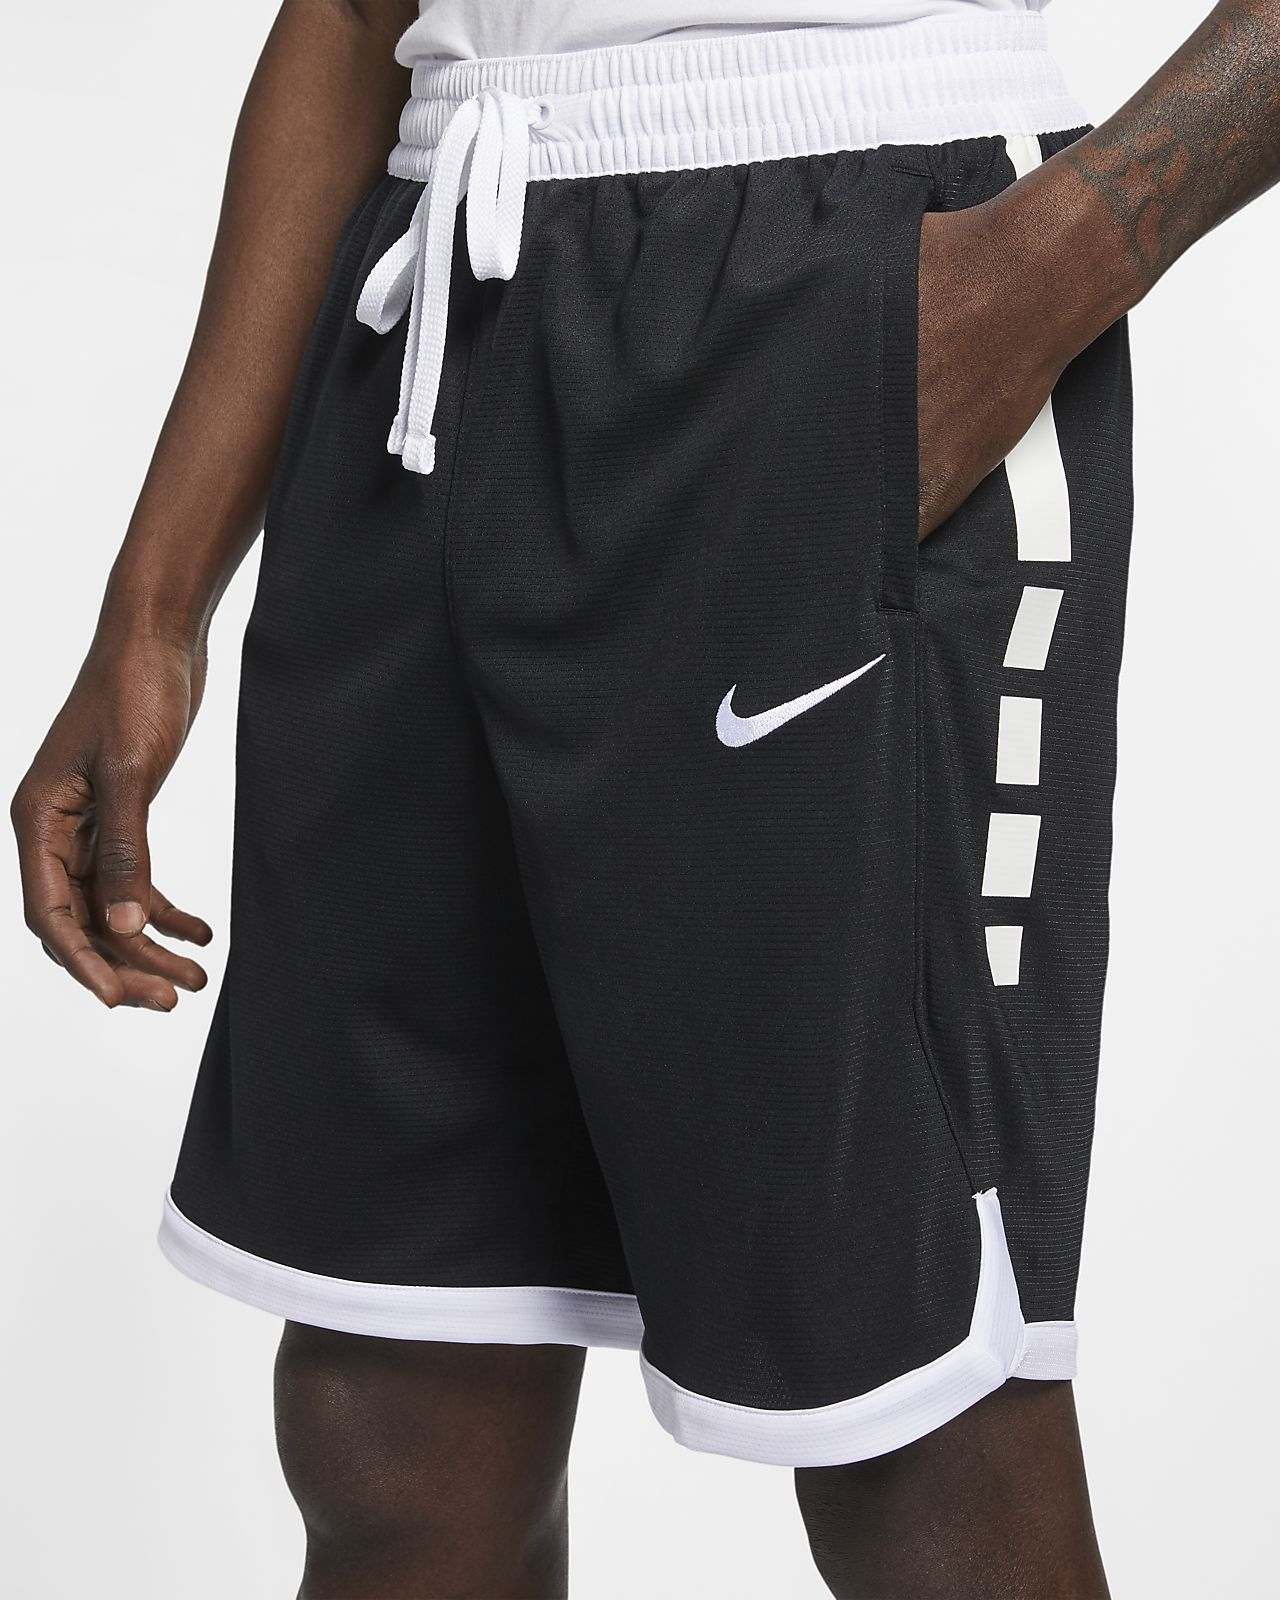 Nike Dri-FIT Elite Men's Basketball Shorts